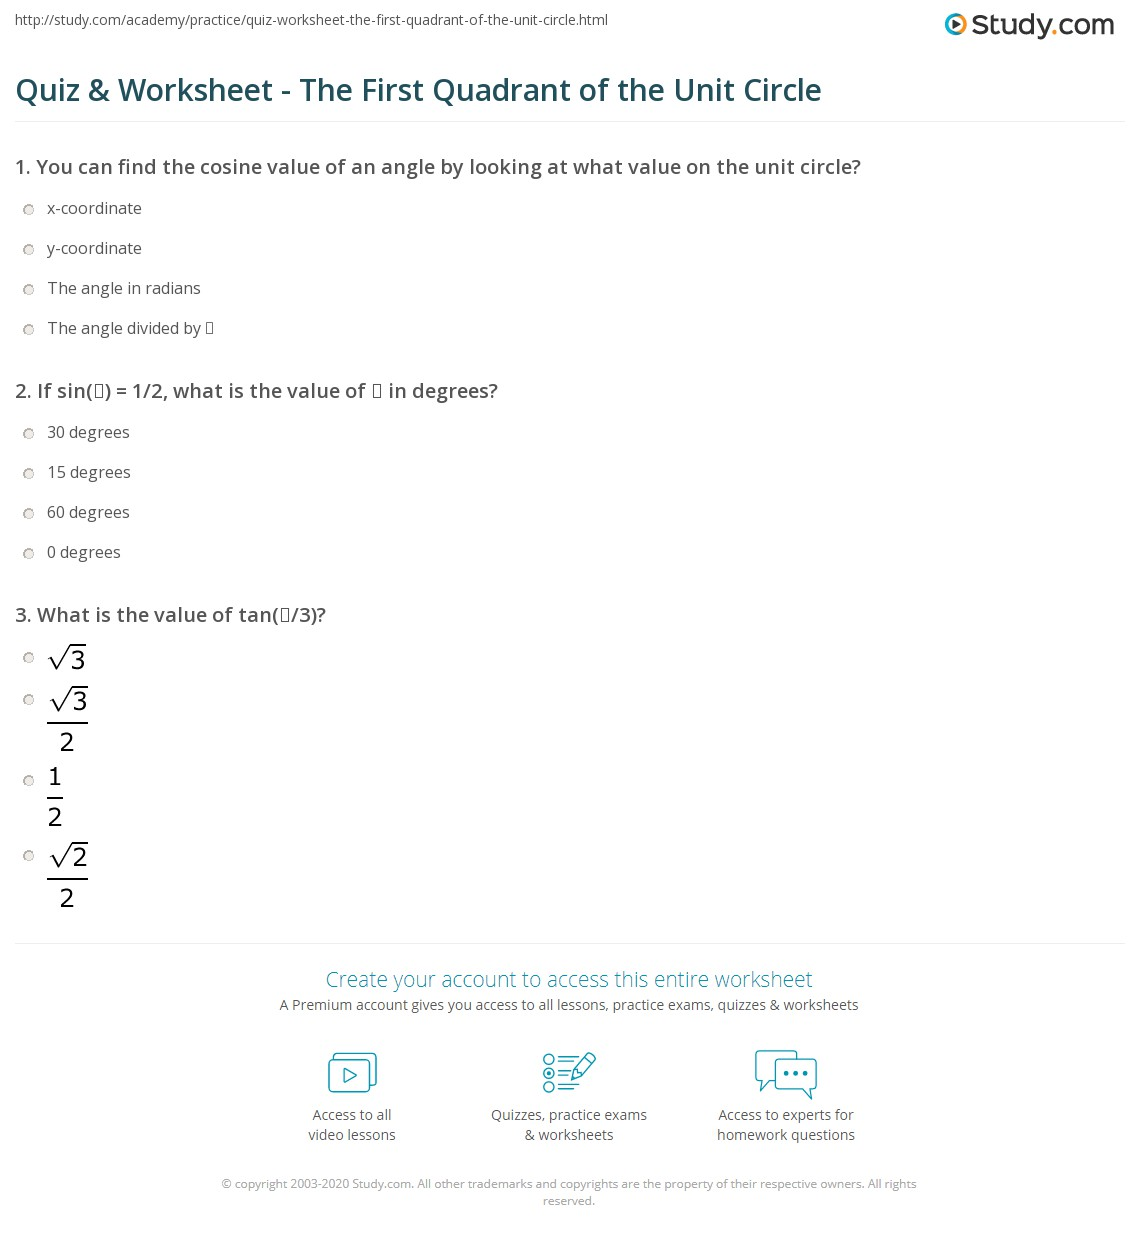 Quiz & Worksheet - The First Quadrant of the Unit Circle | Study.com